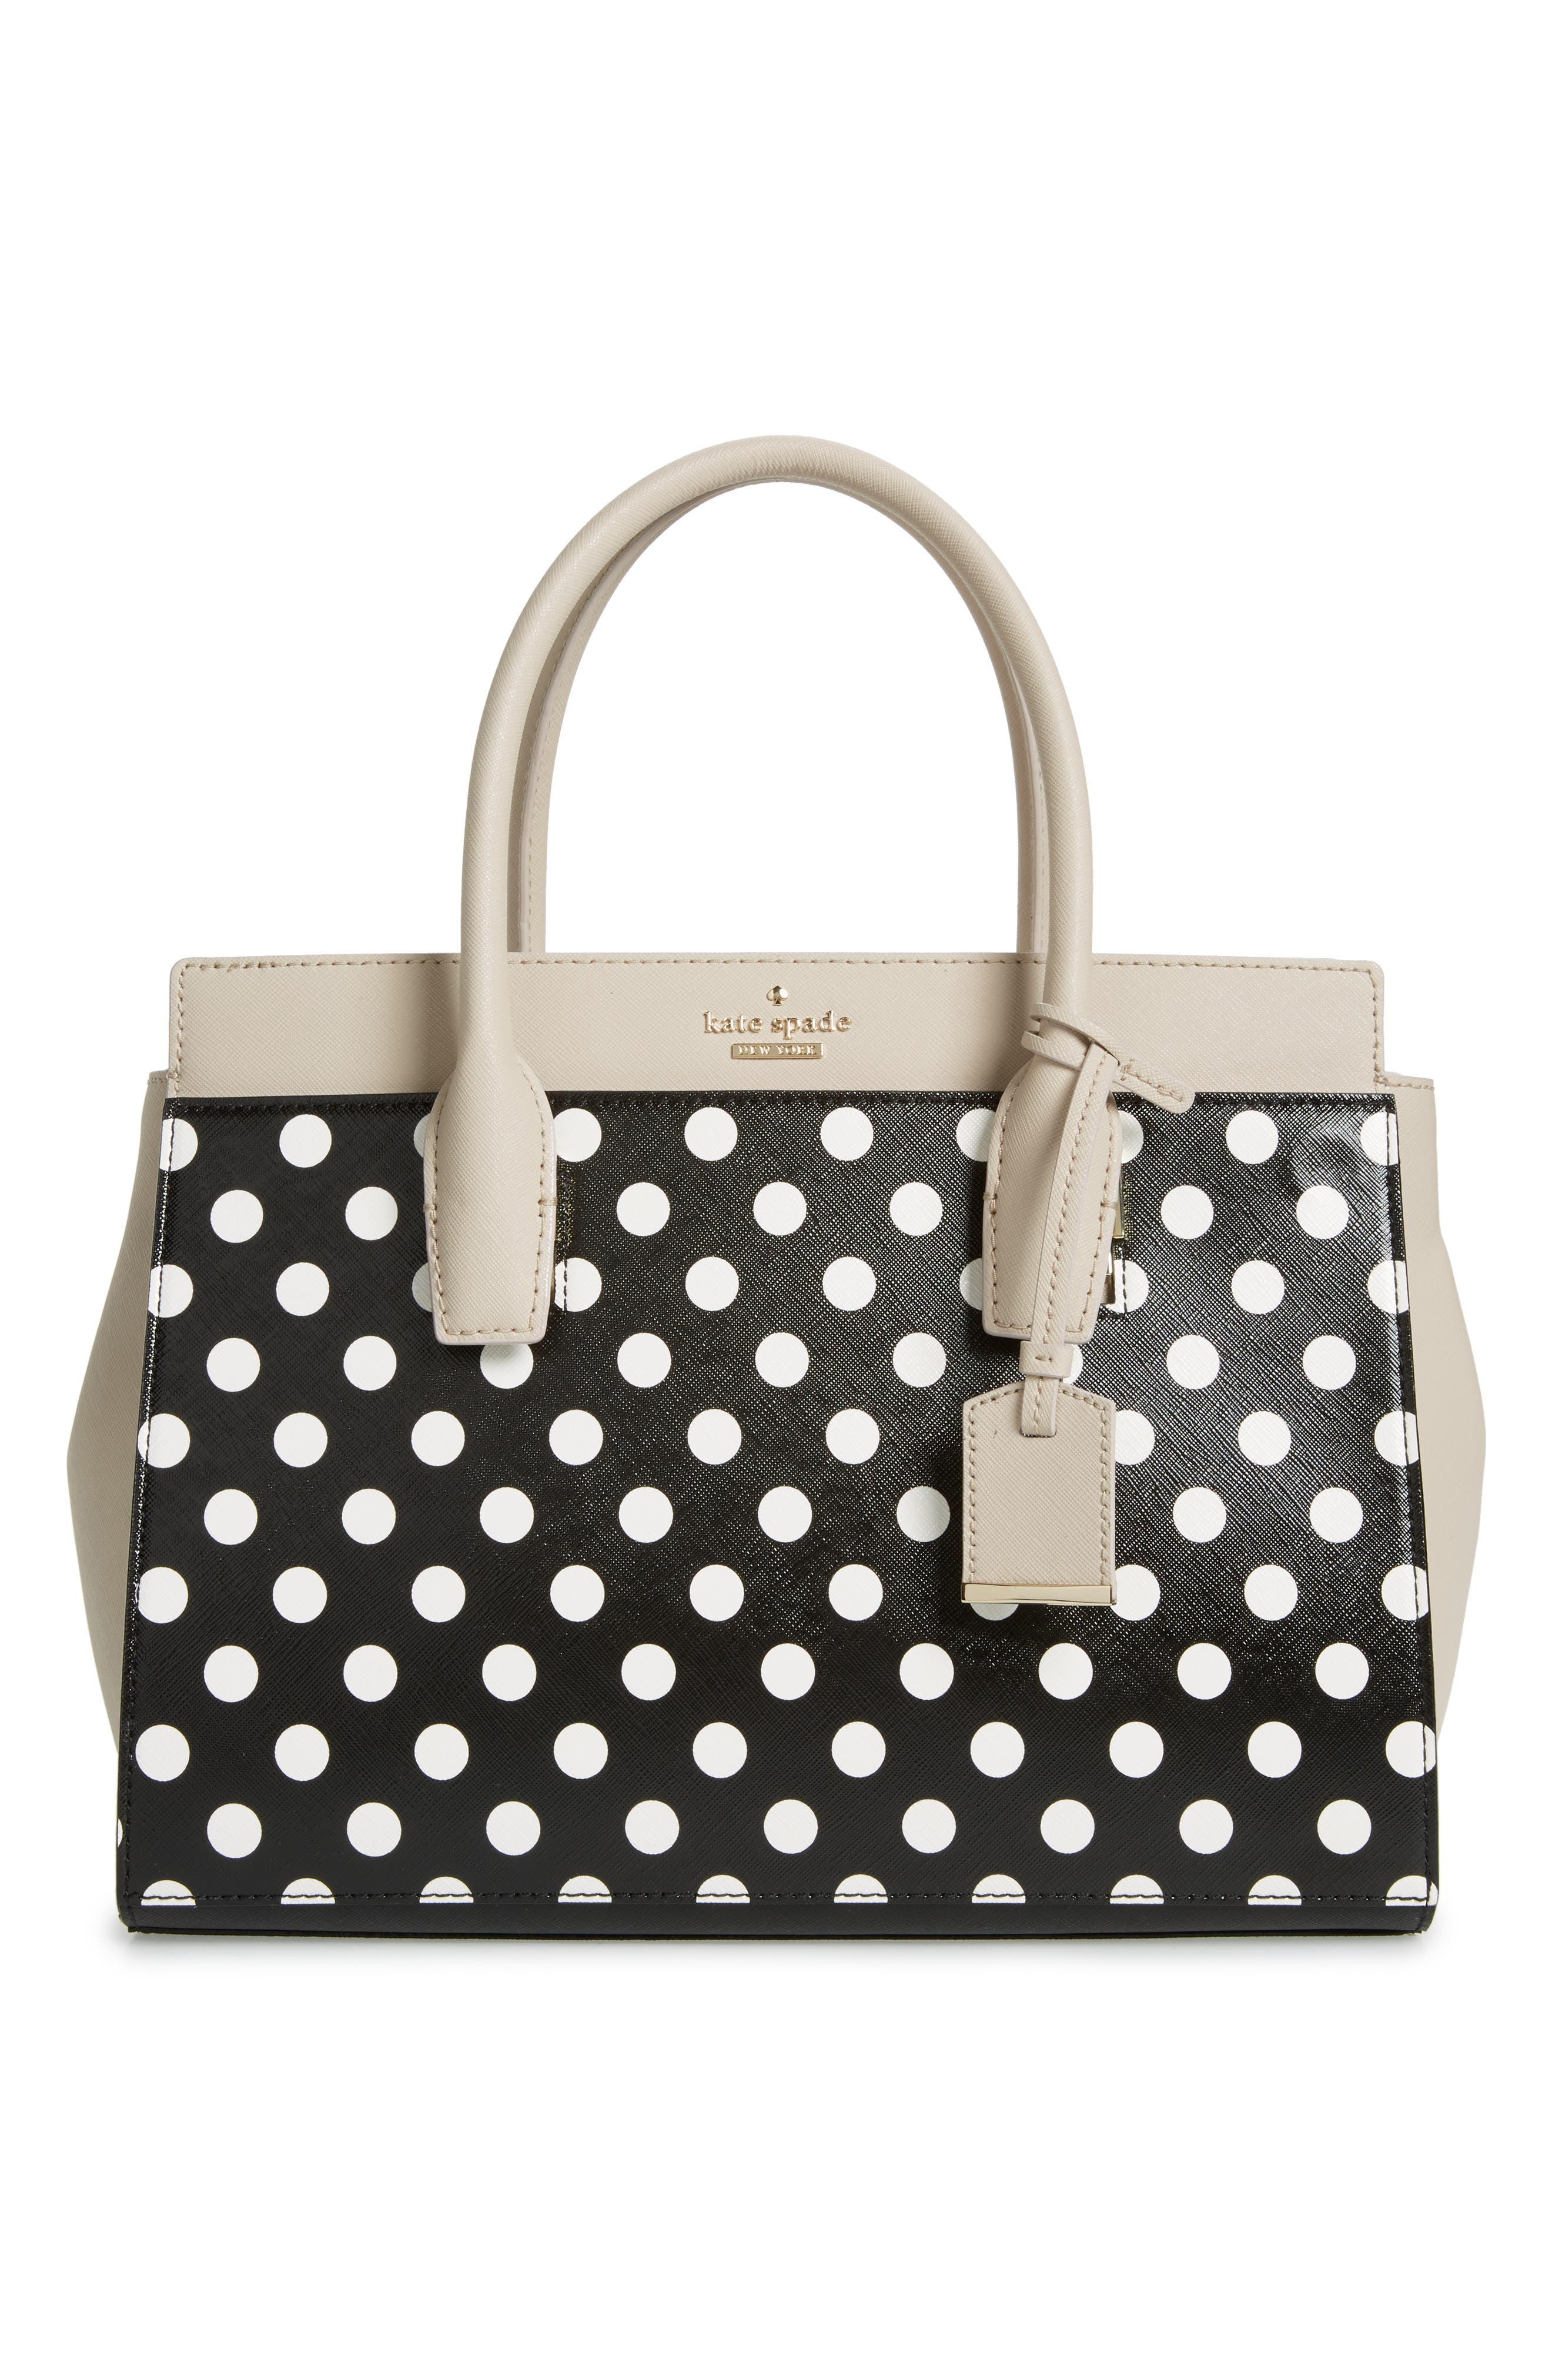 make it mine reversible polka dot/solid leather snap-on accent flap,                             Alternate thumbnail 2, color,                             010